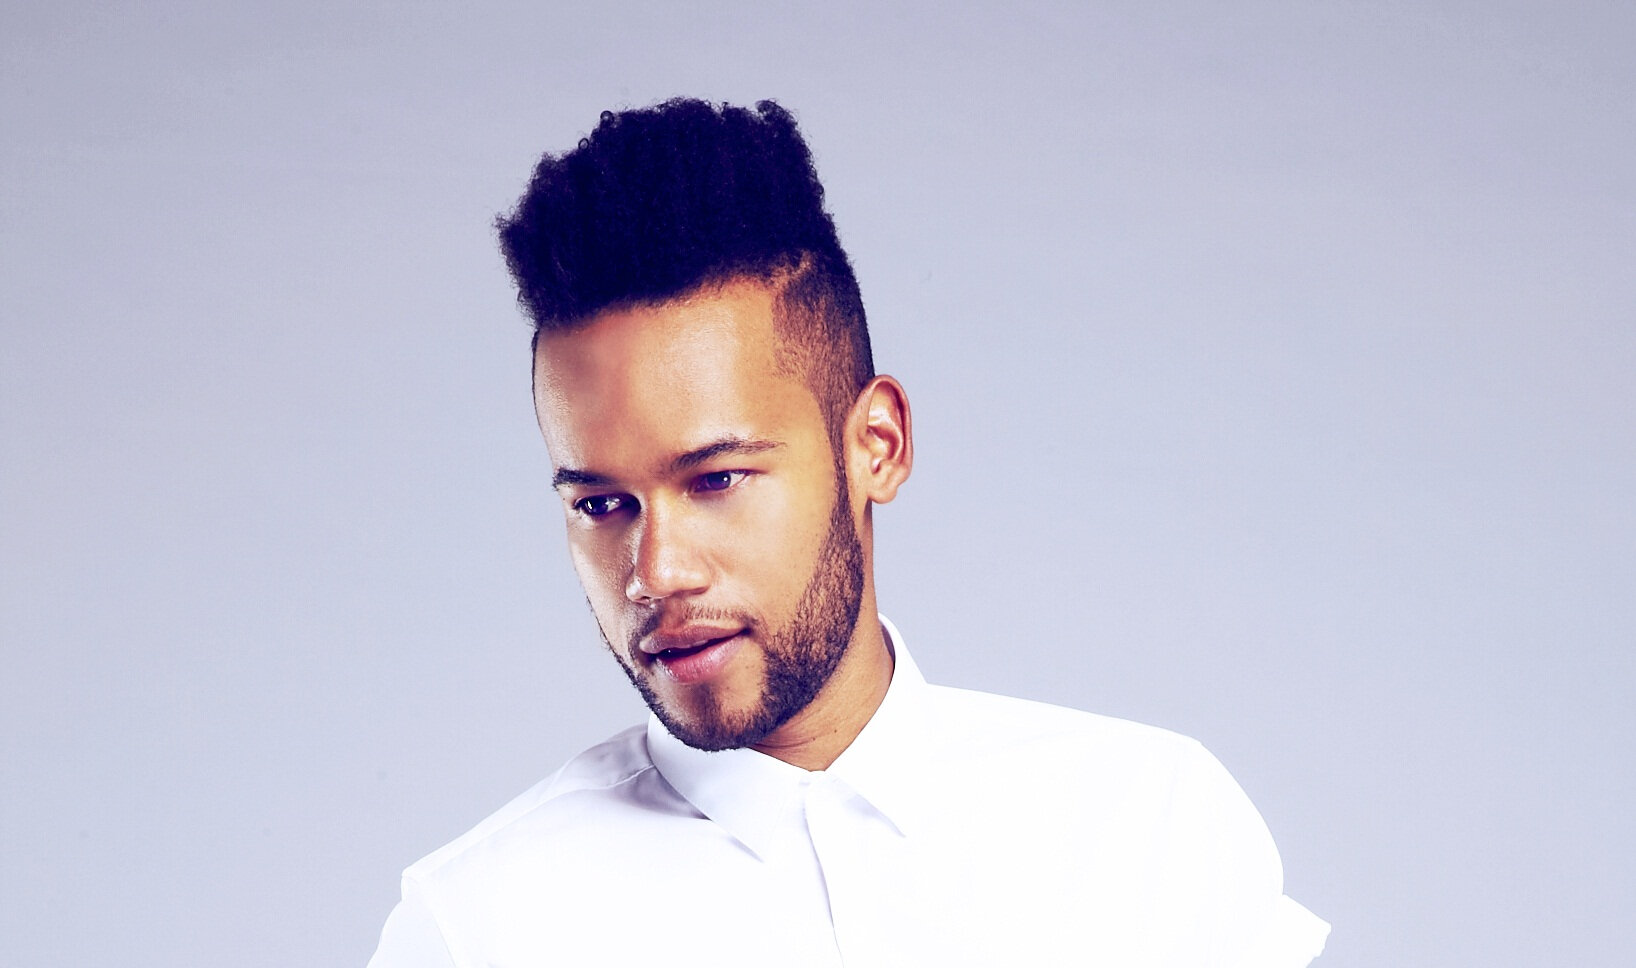 Part 4: How well do you know your mom, we asked Chad Saaiman